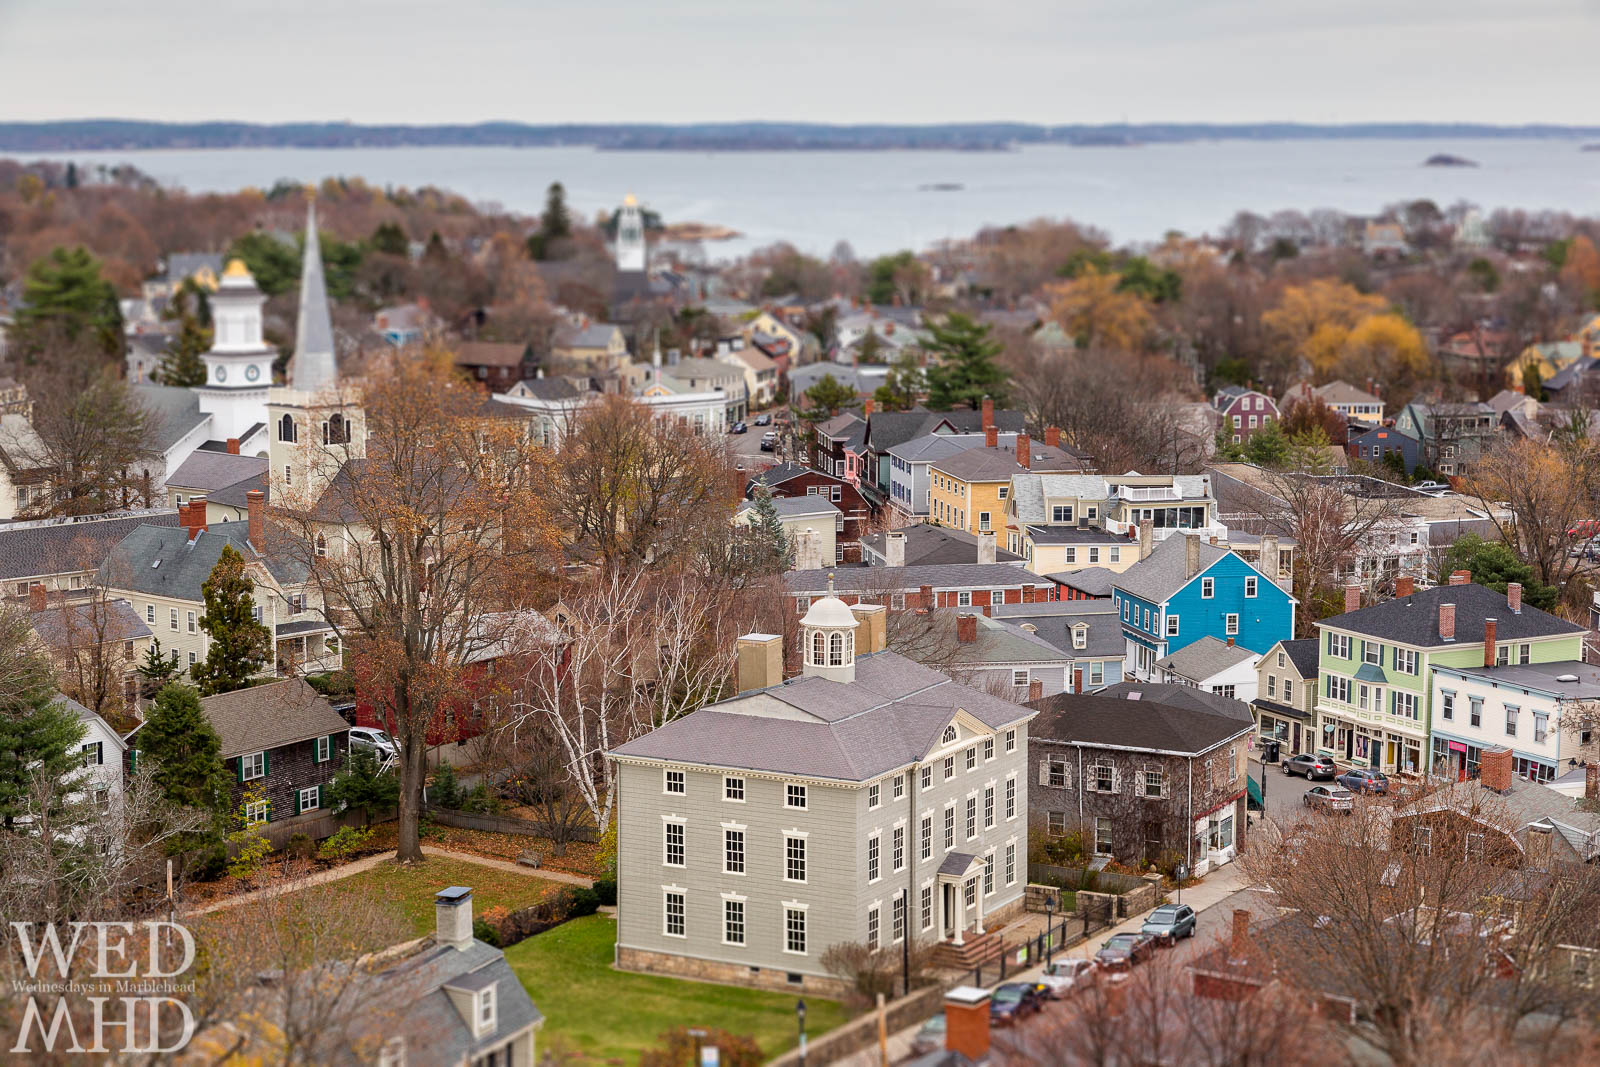 Historic downtown Marblehead seen from atop Abbot Hall appears as a model New England town